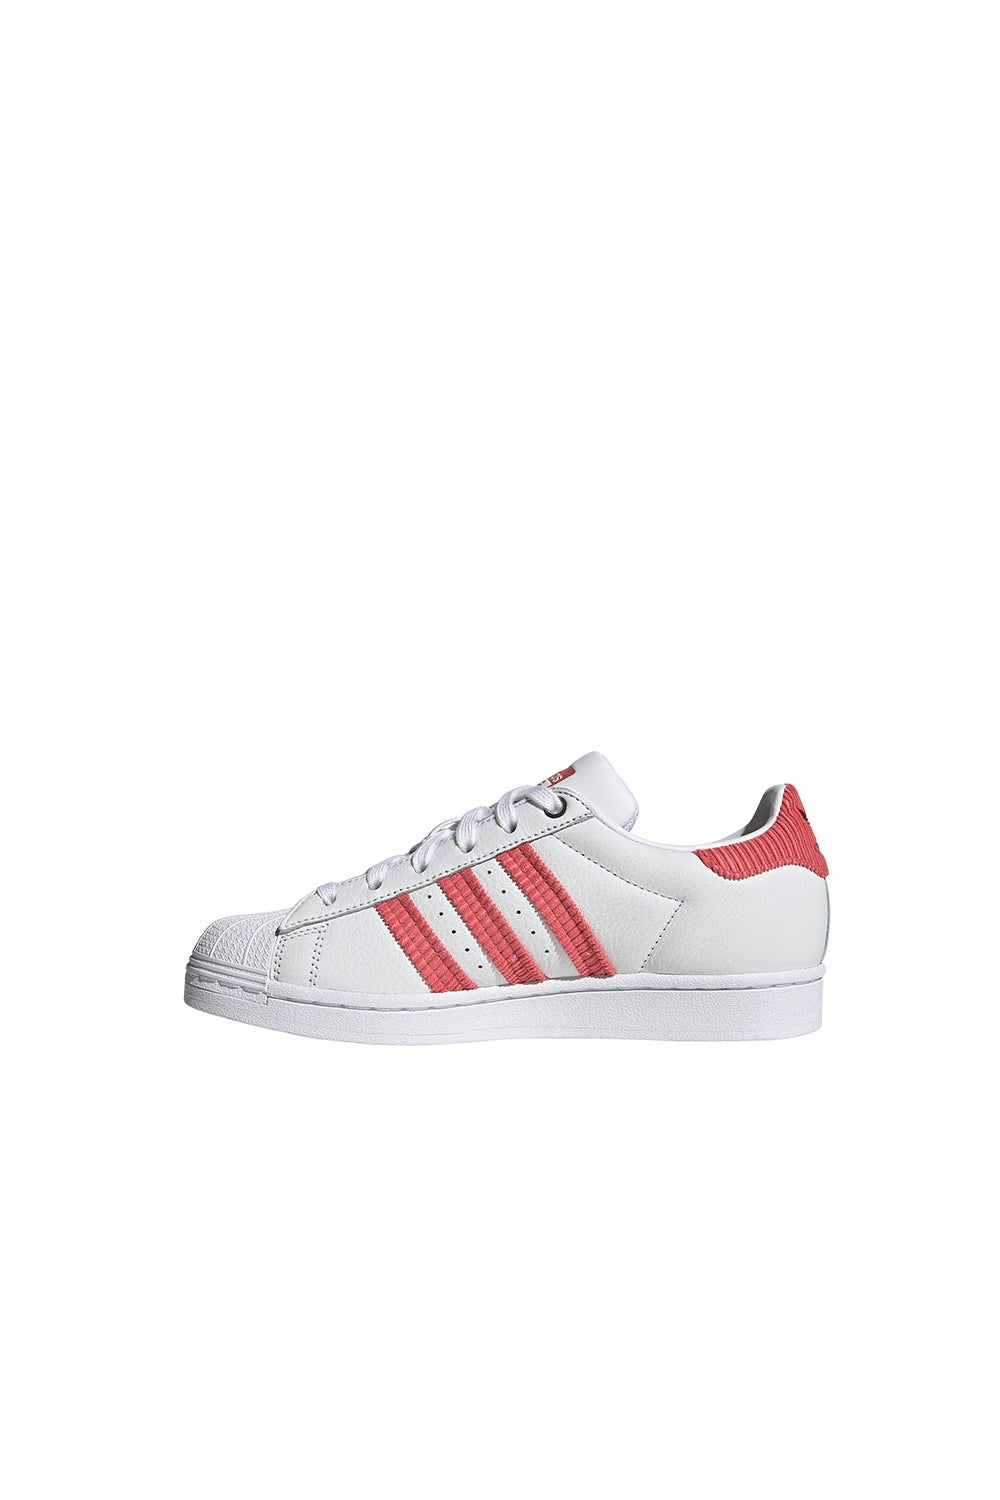 adidas Superstar Tactile Pink